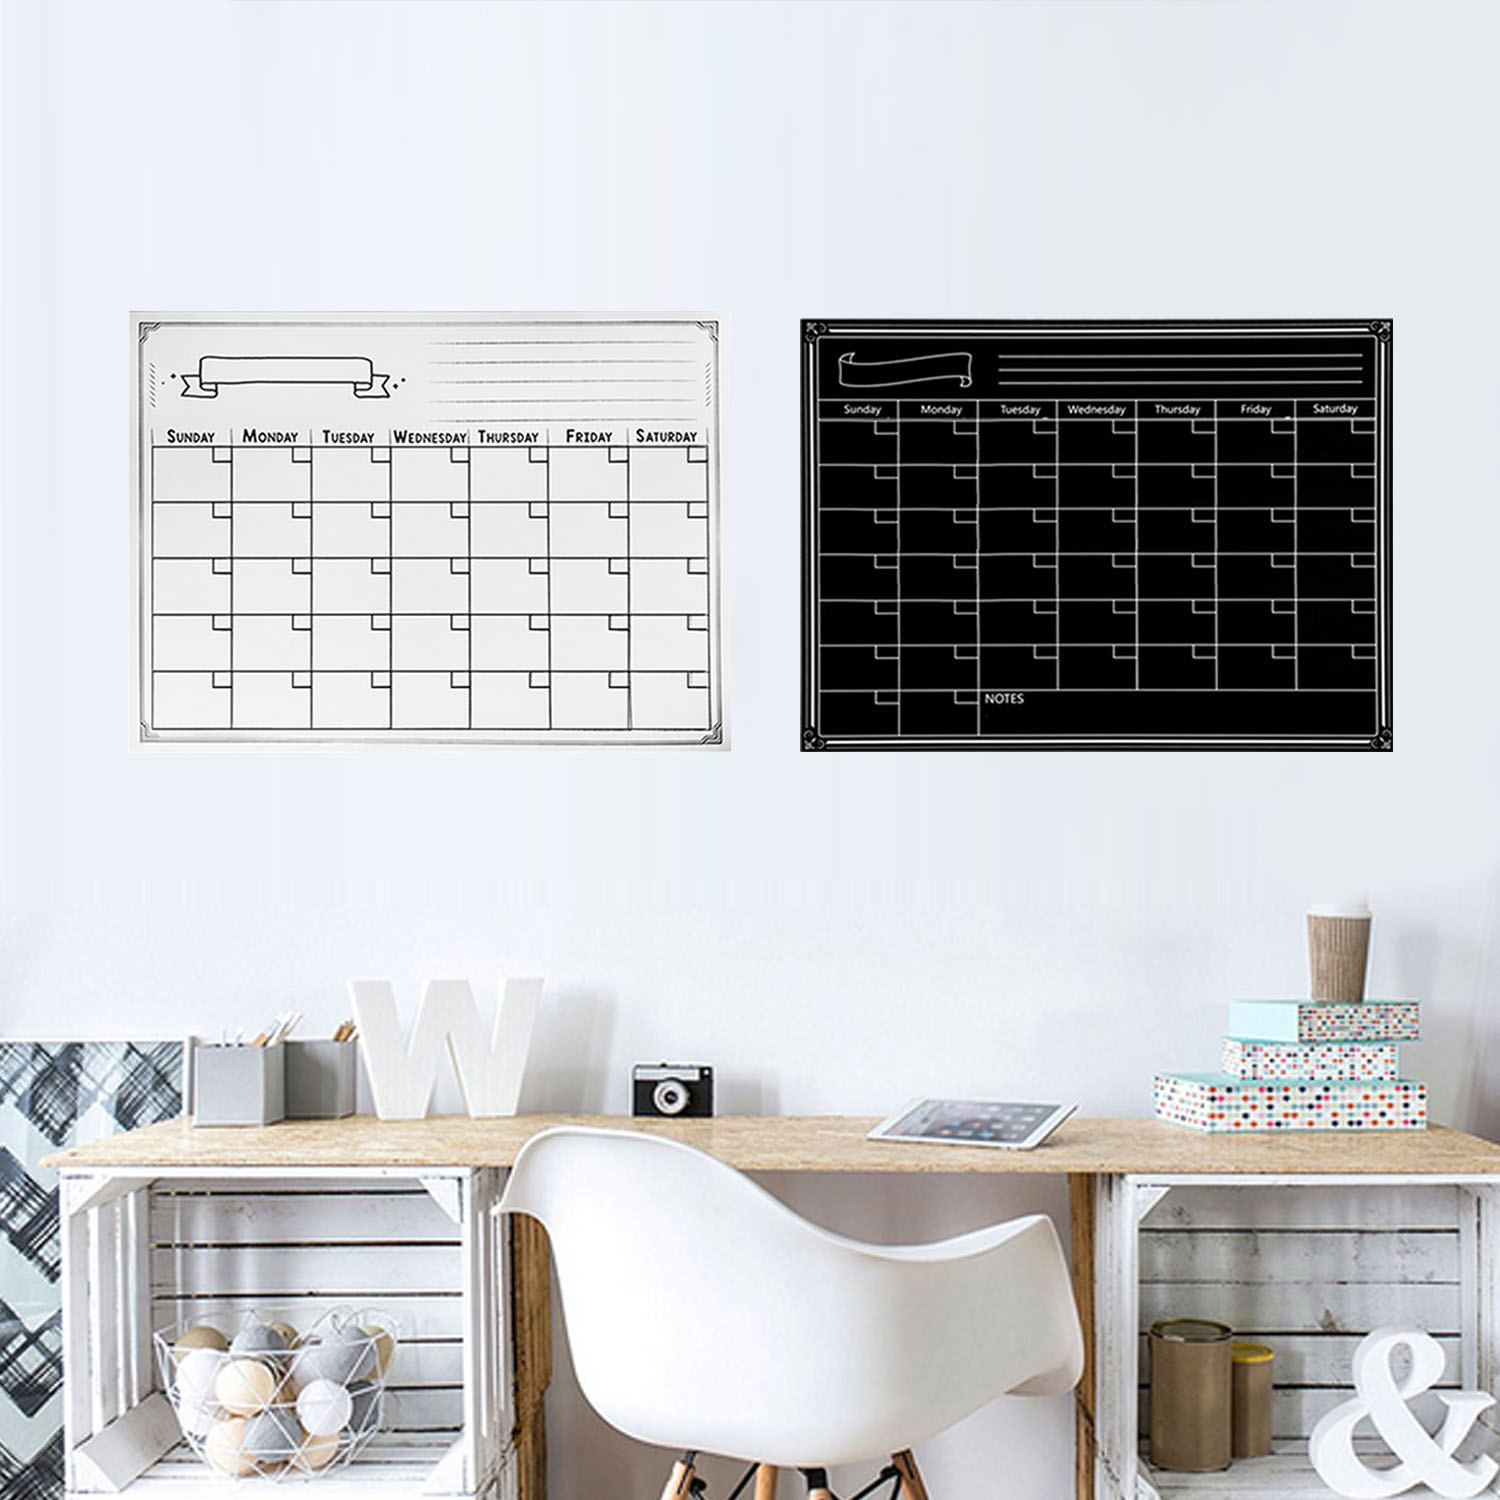 40x30cm Reusable Magnetic Refrigerator Calendar Monthly Schedule Planner Whiteboard Board With Pen Eraser For Home Office Supply